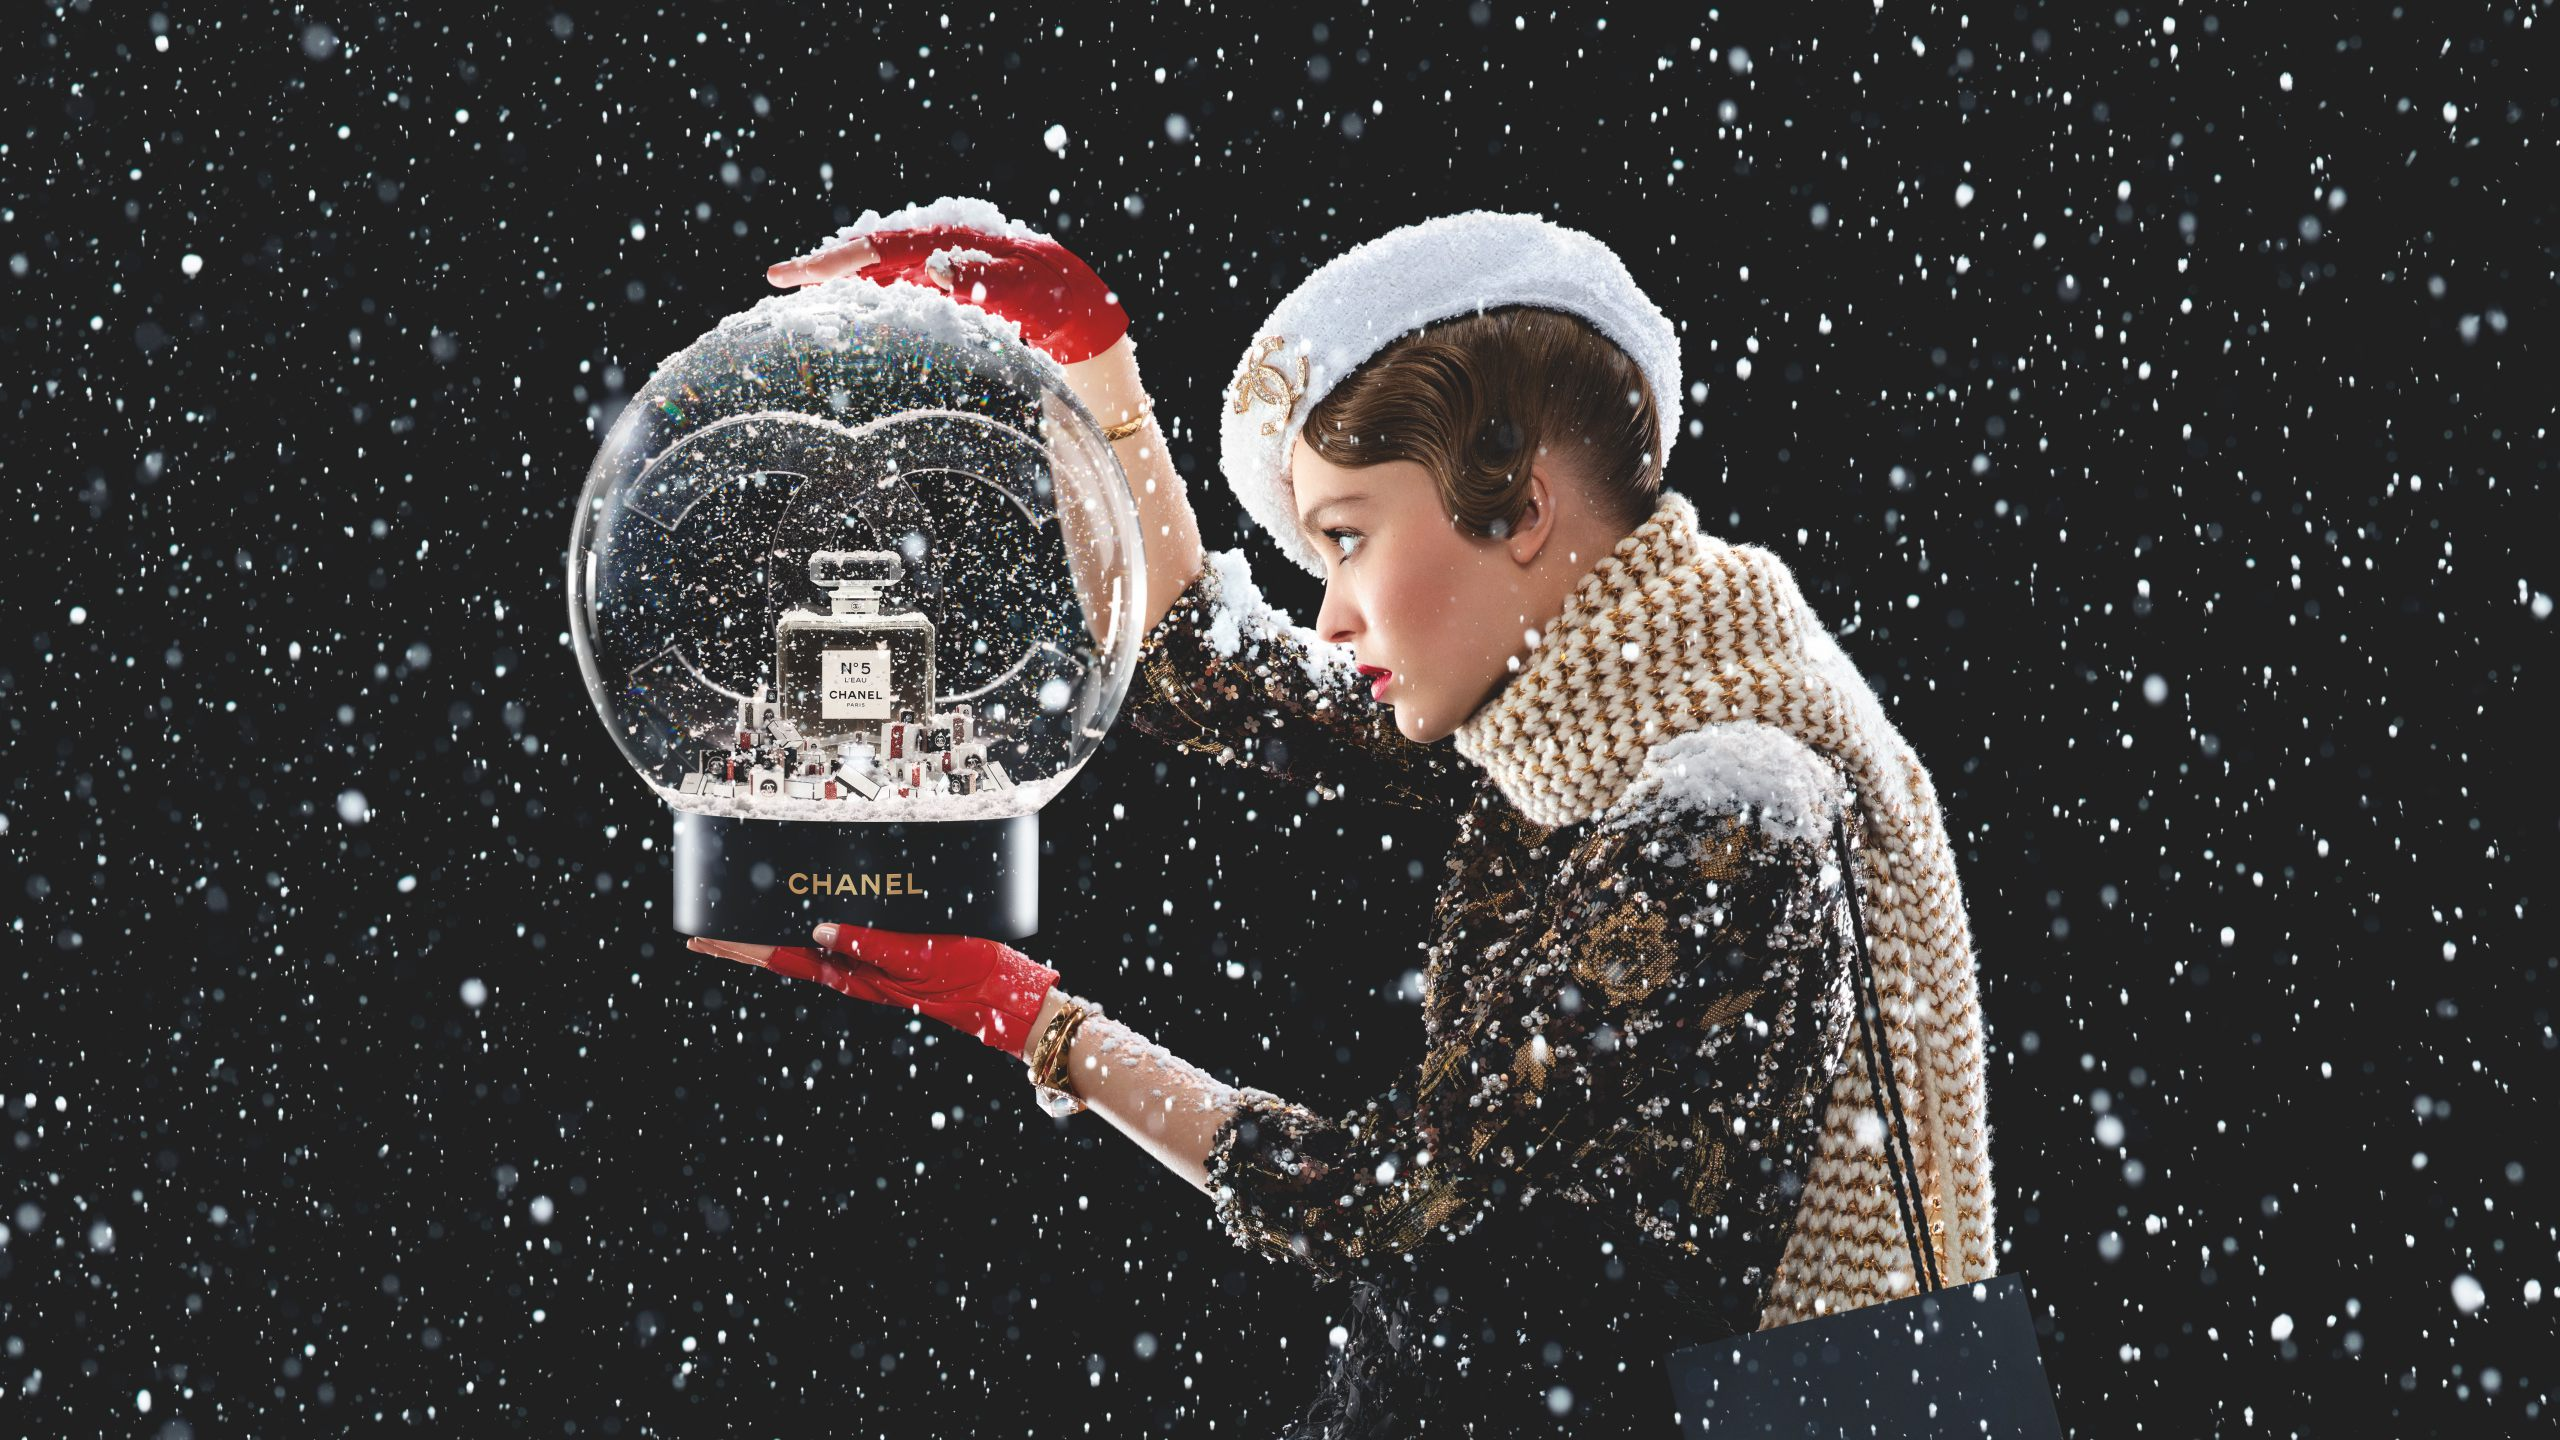 Chanel adds a touch of theatre to its festive campaign by Jean-Paul Goude